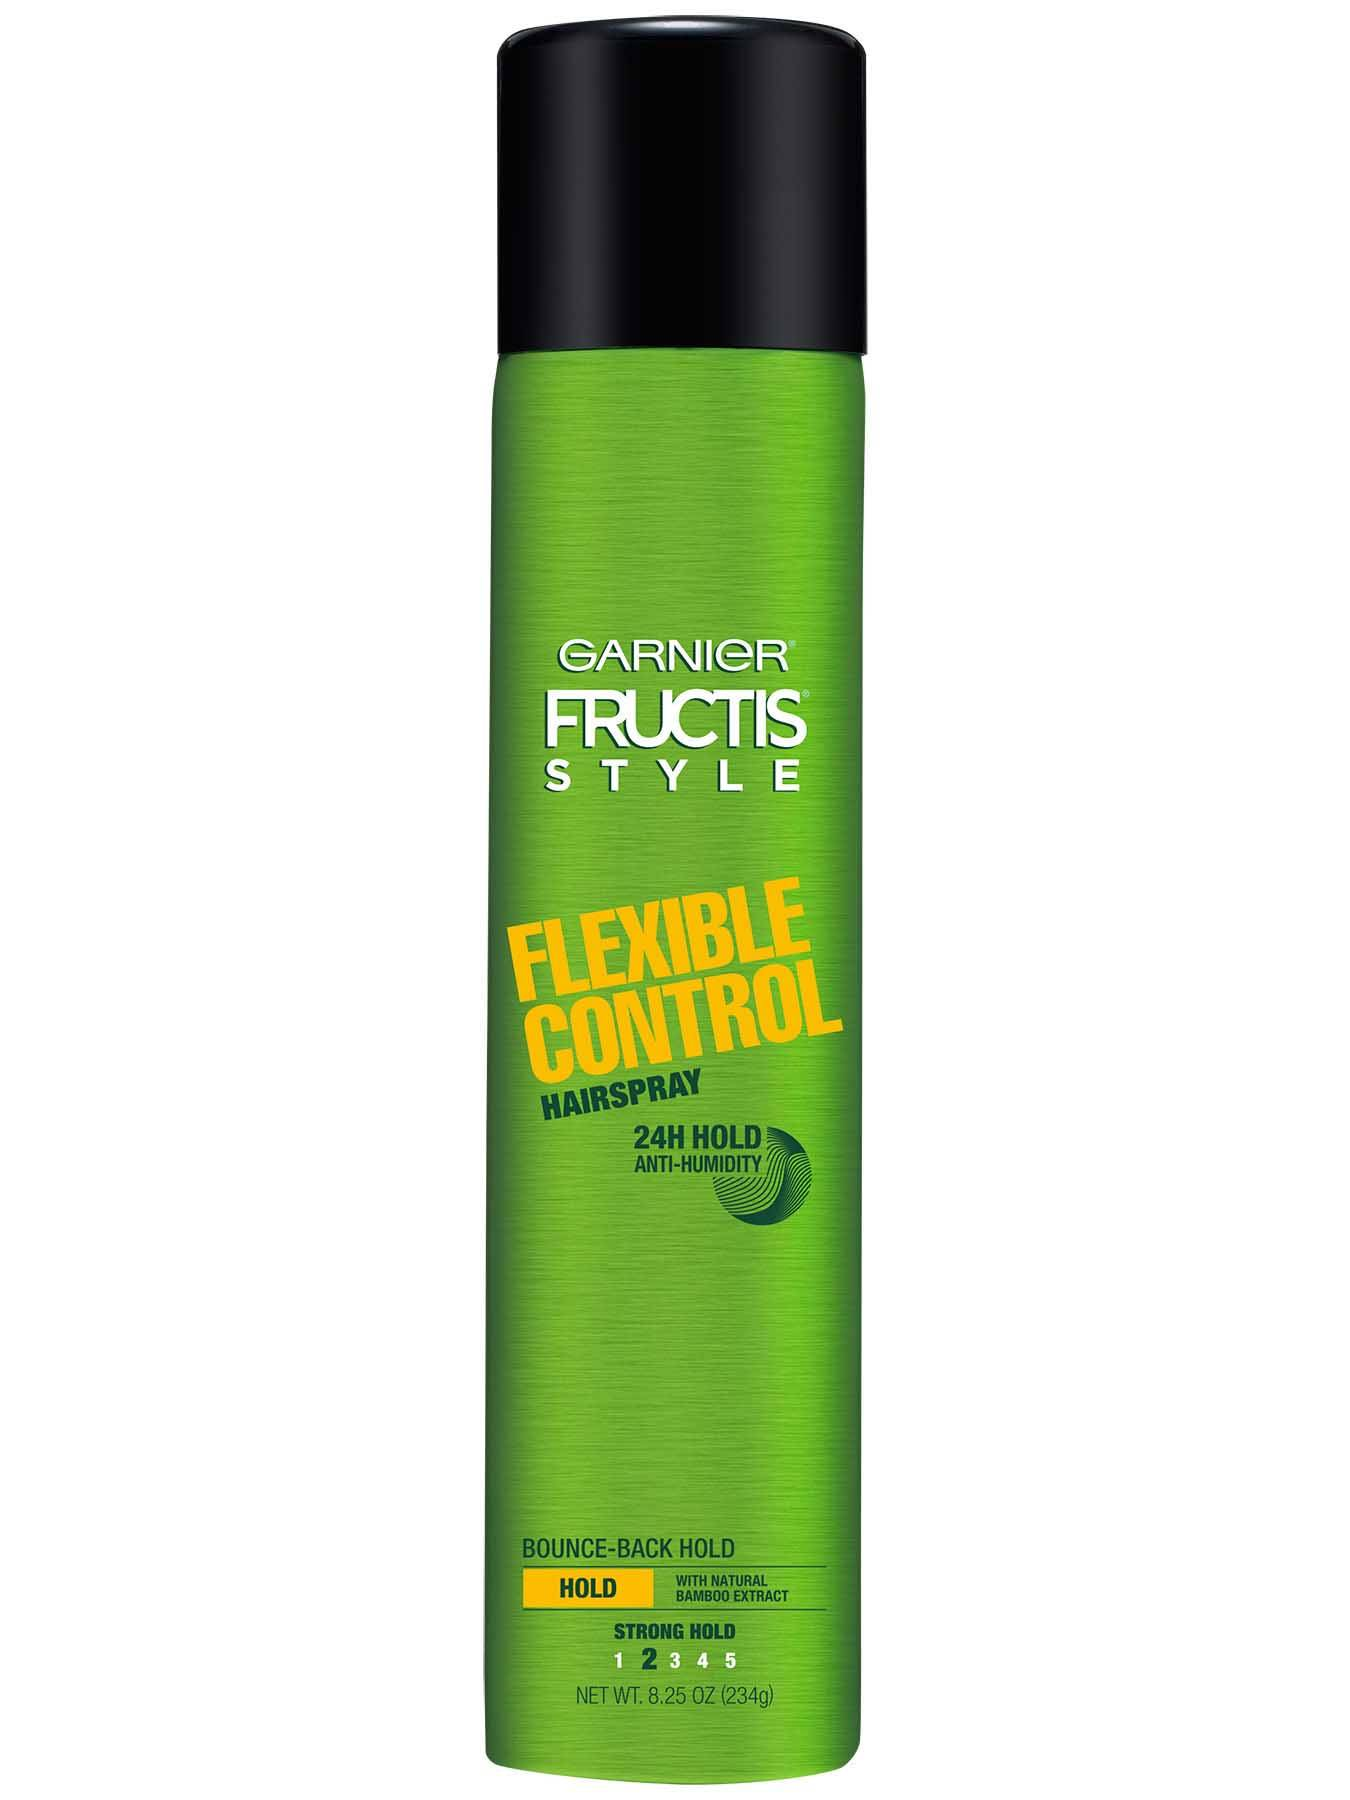 Front view of Flexible Control Anti-Humidity Aerosol Hair Spray.